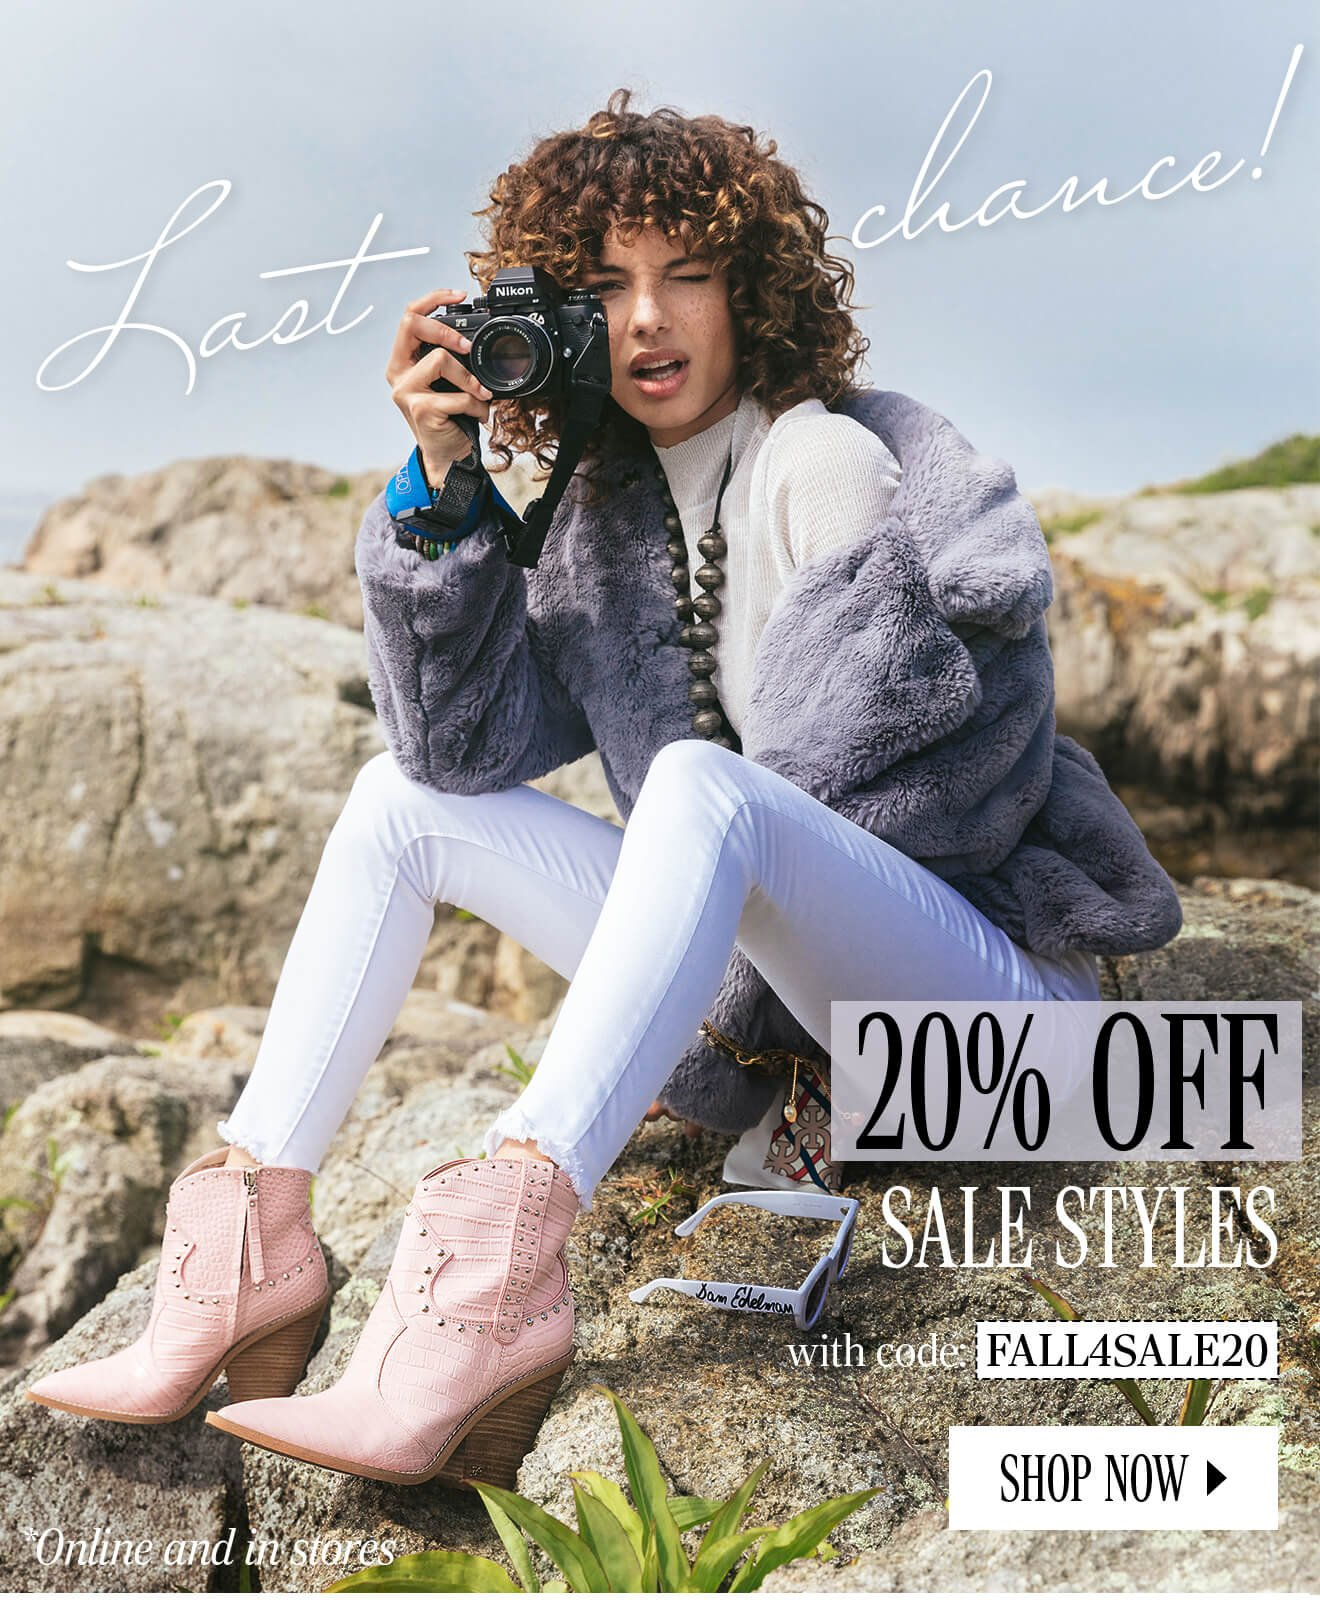 Last Chance! 20% Off Sale Styles with code FALL4SALE20. Shop Now